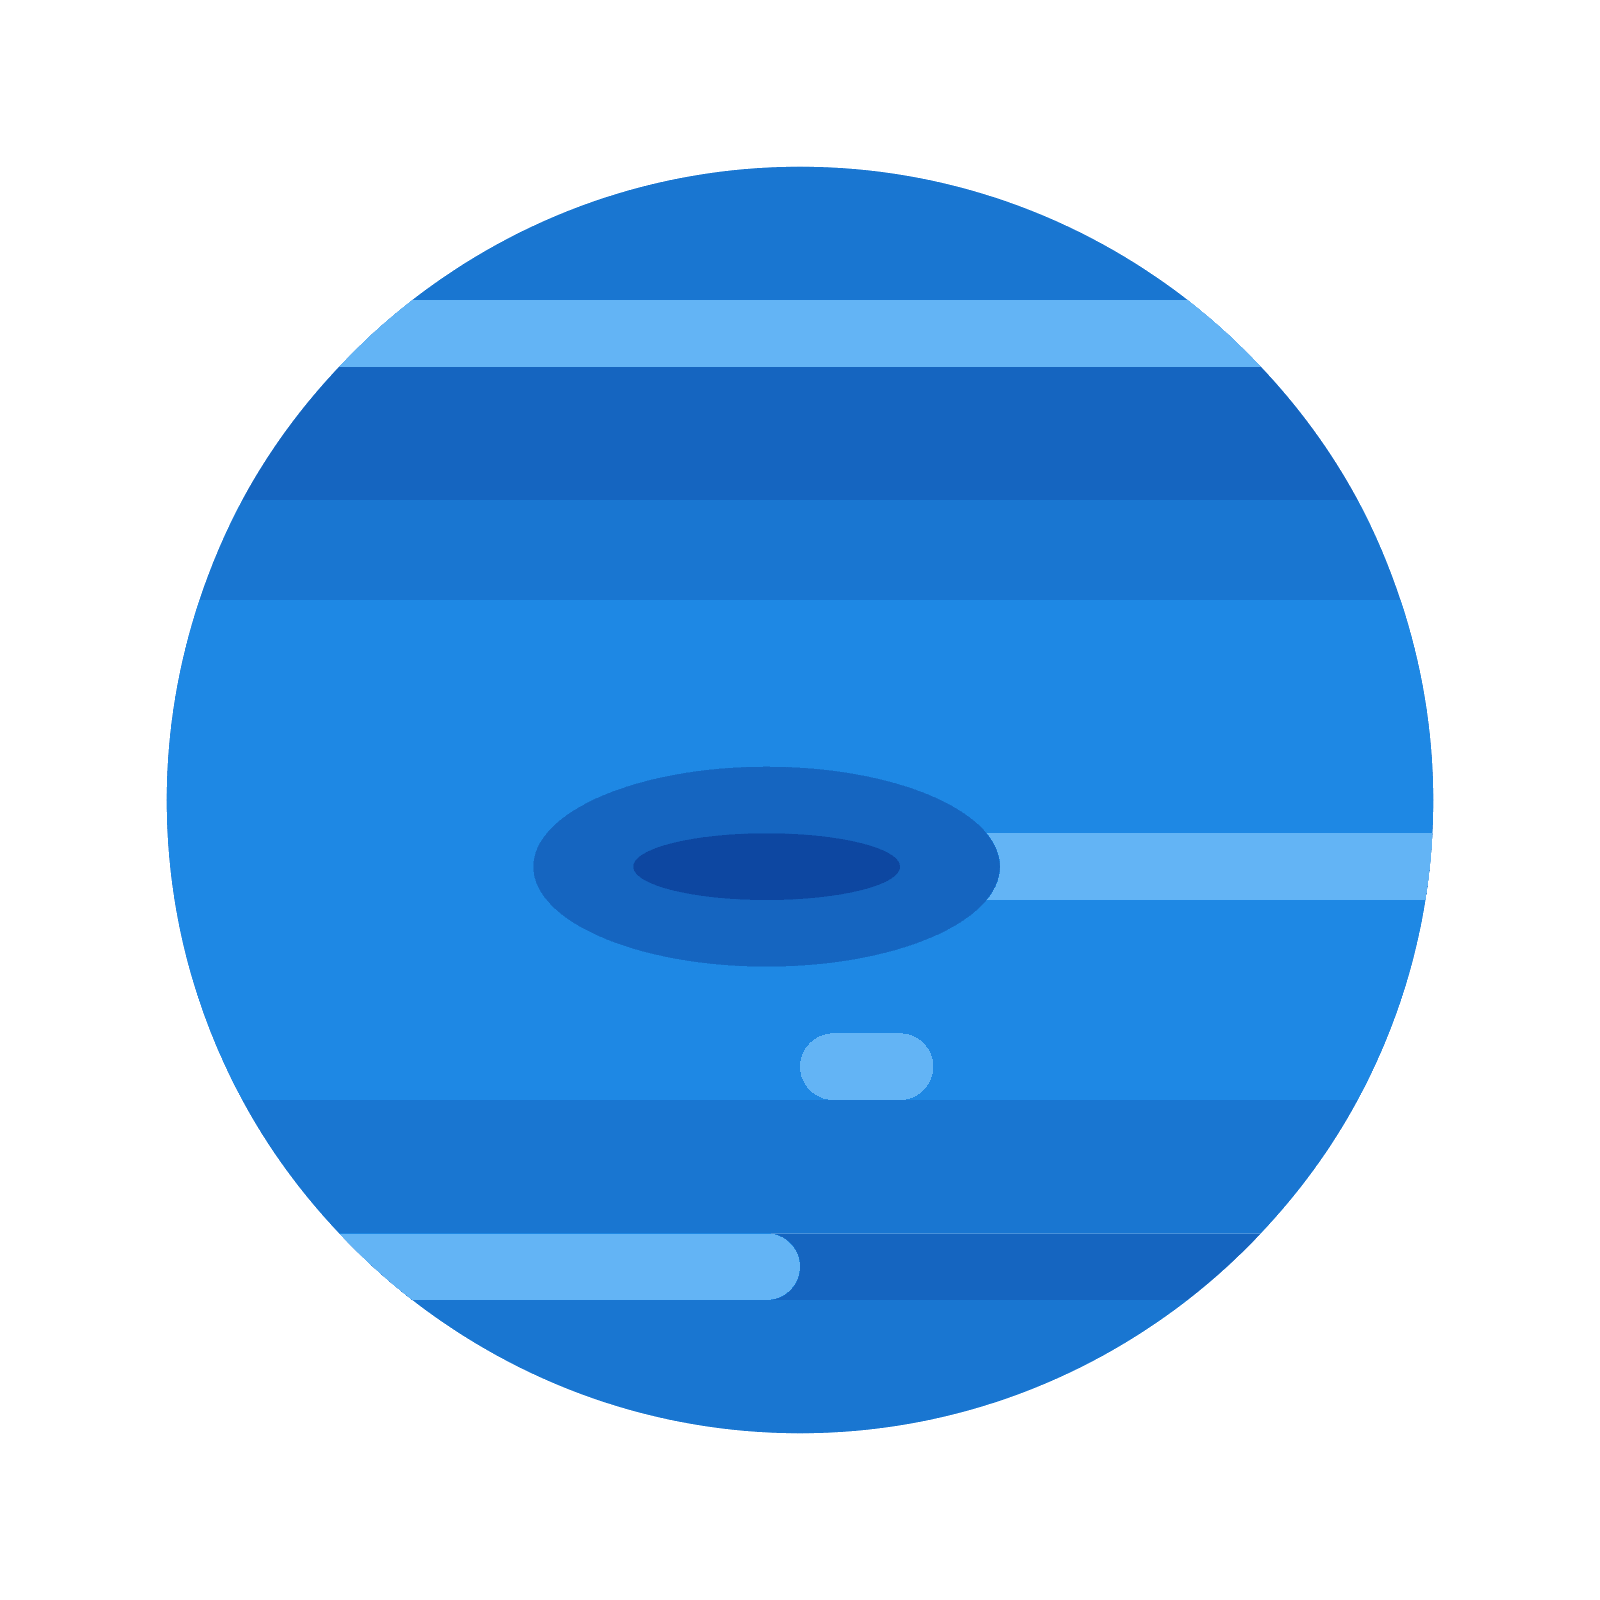 Neptune png. Planet icon kostenloser download